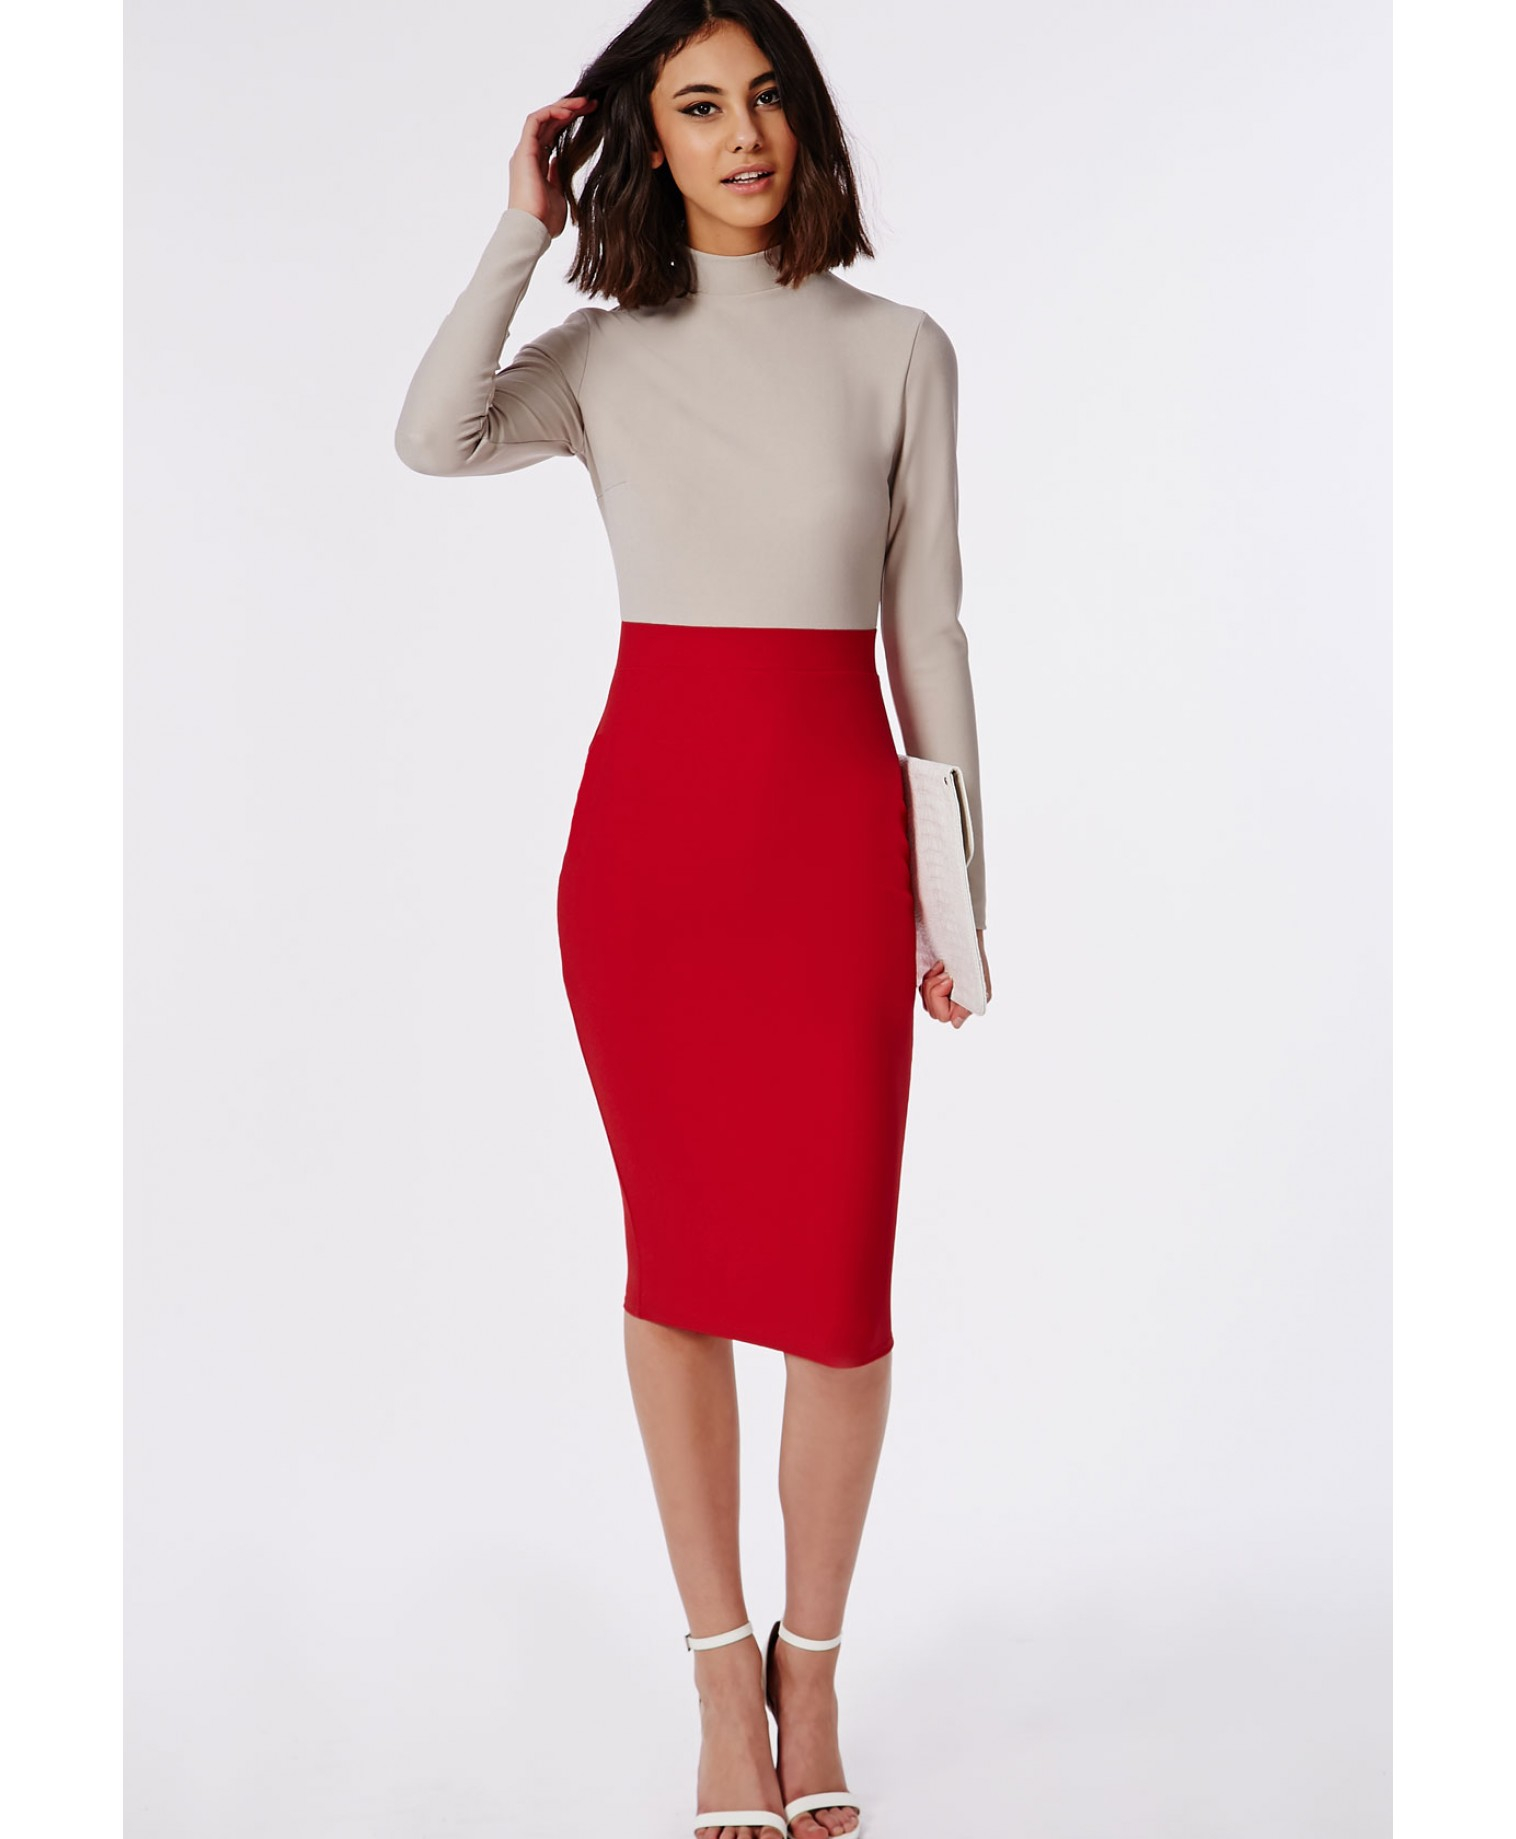 Missguided Women's & Junior's Clothing   Nordstrom,+ followers on Twitter.